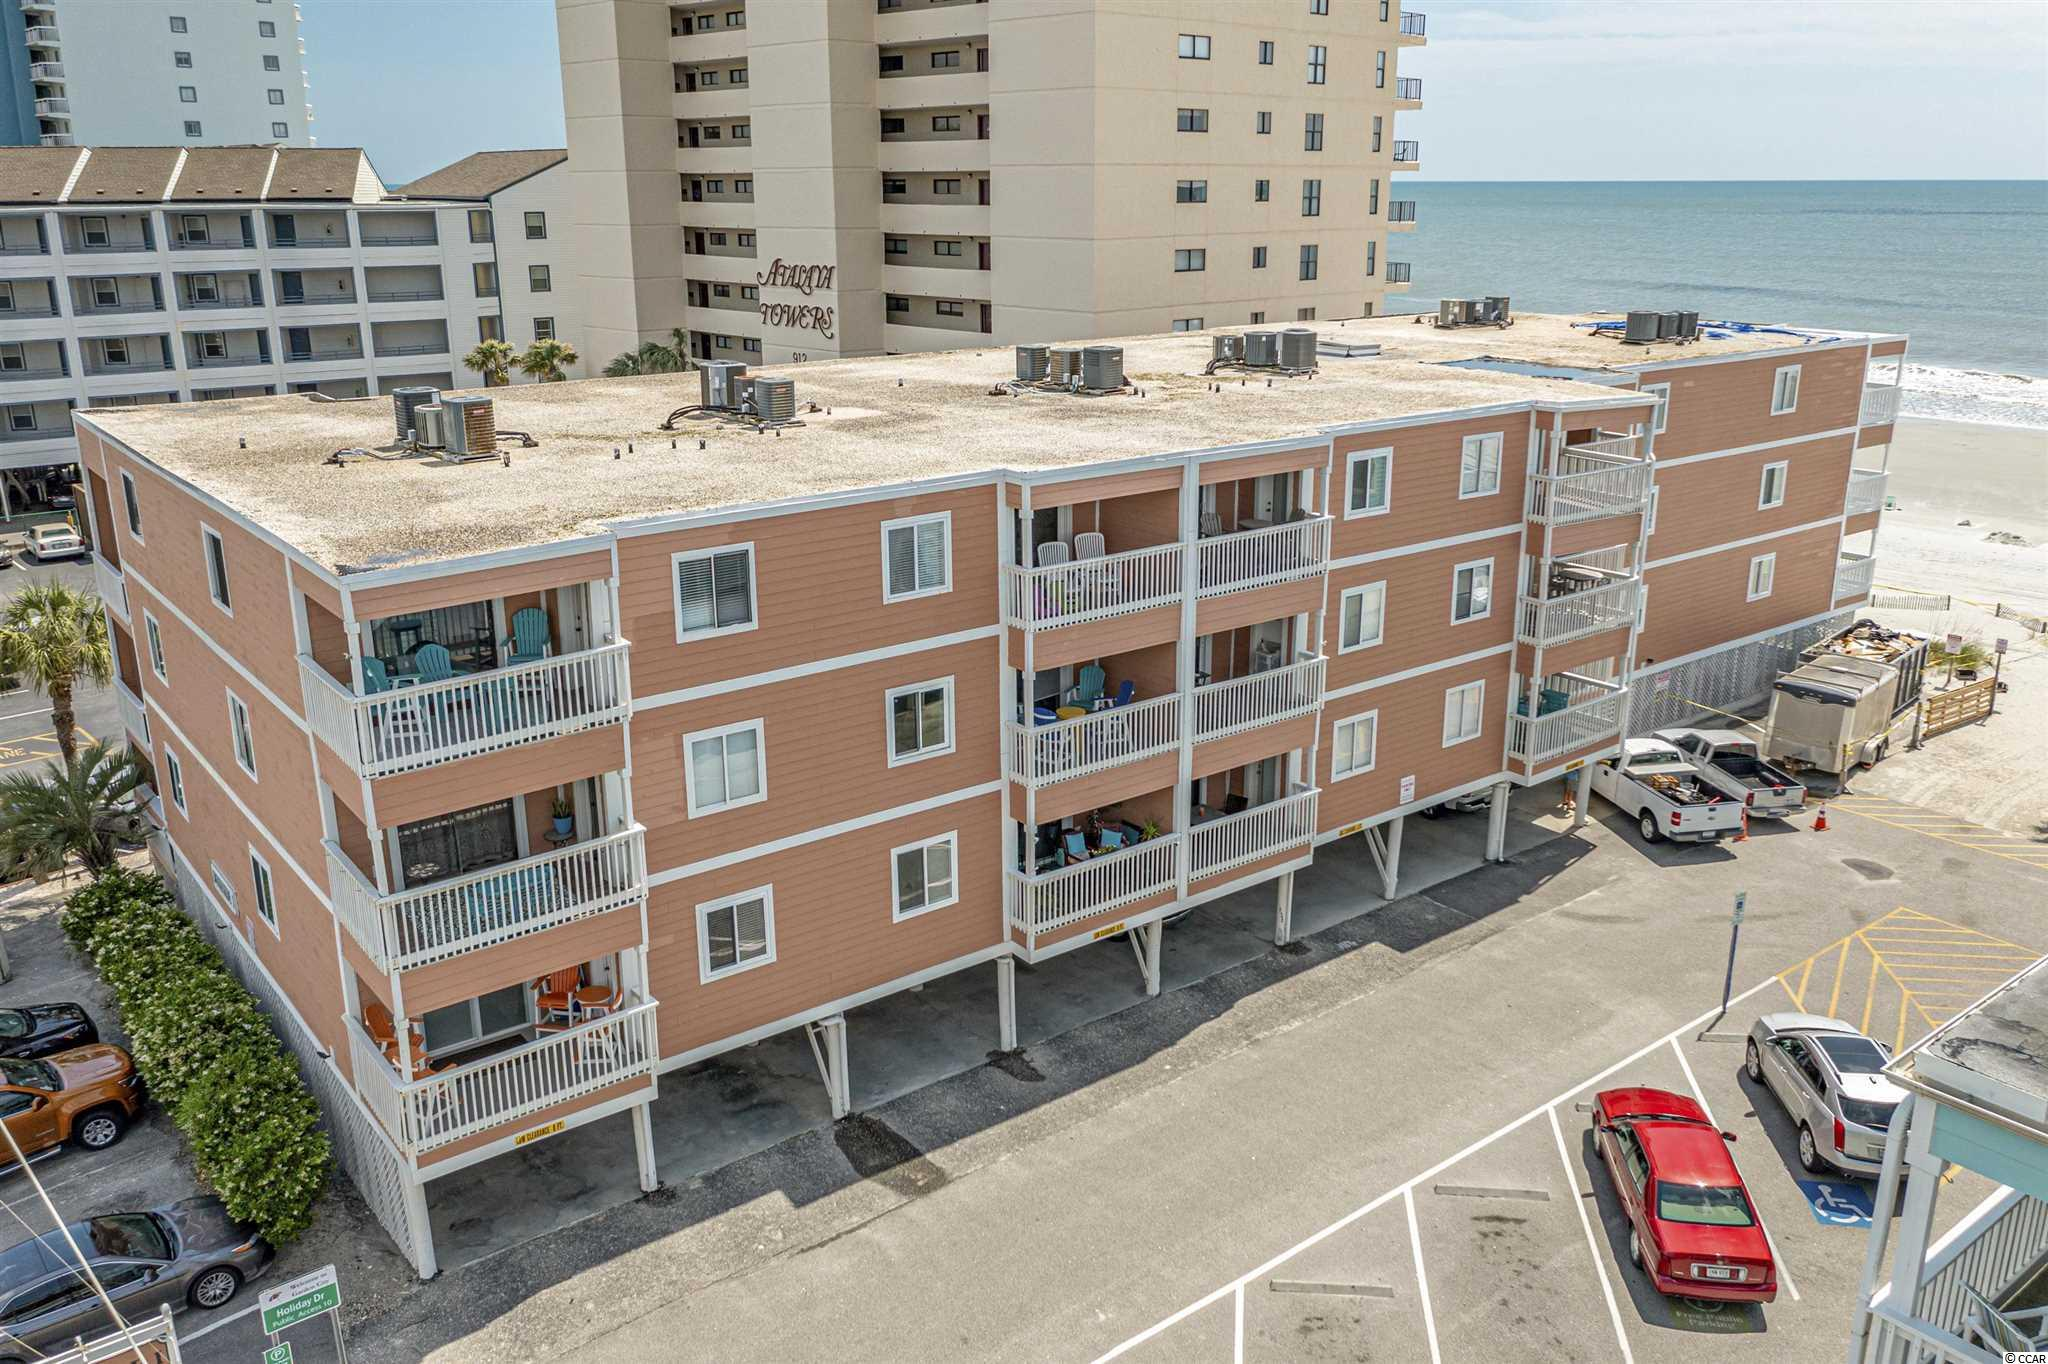 This beautiful 3 bedroom, 2 1/2 bath end unit condo located on the 1st floor in the highly desirable area of Garden City. This unit was completely updated when purchased in 2017 down to the duct work.  Located in an ocean front building, this condo is just steps from the ocean, close to shopping and restaurants. The condo is turnkey and would be a great primary or secondary home or a great rental property. This unit also features an 11X12 bonus room and a separate 3.5X3X8 secured storage room. This unit comes completely furnished.  Call today this one won't last long.